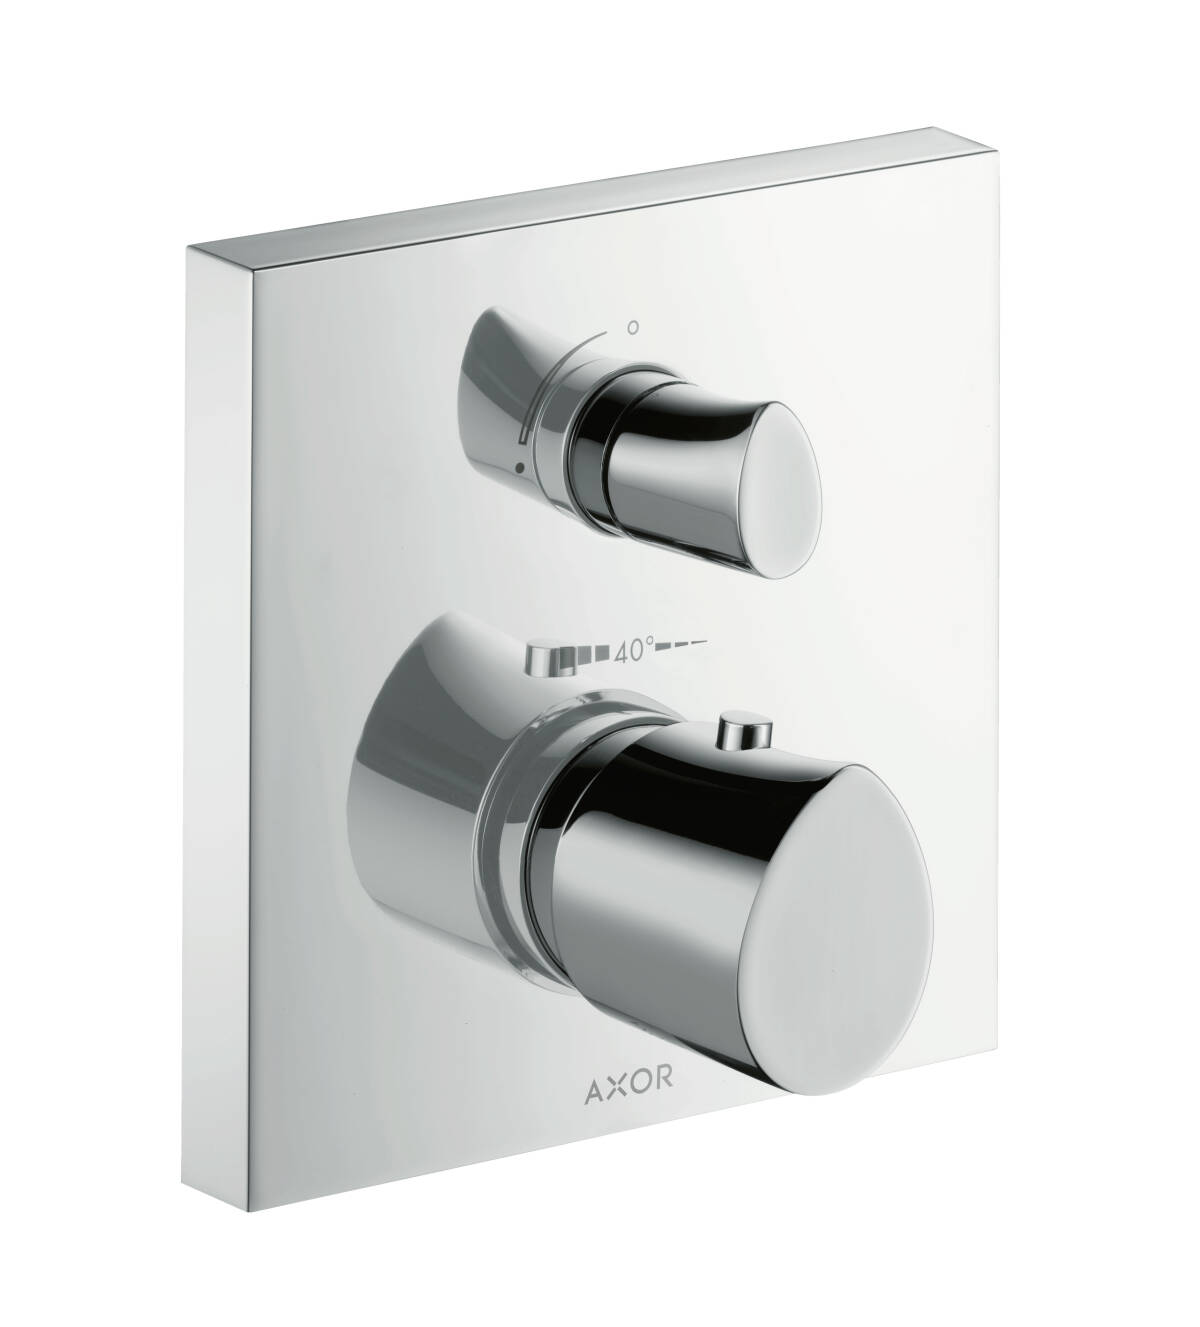 Thermostat for concealed installation with shut-off/ diverter valve, Chrome, 12716000